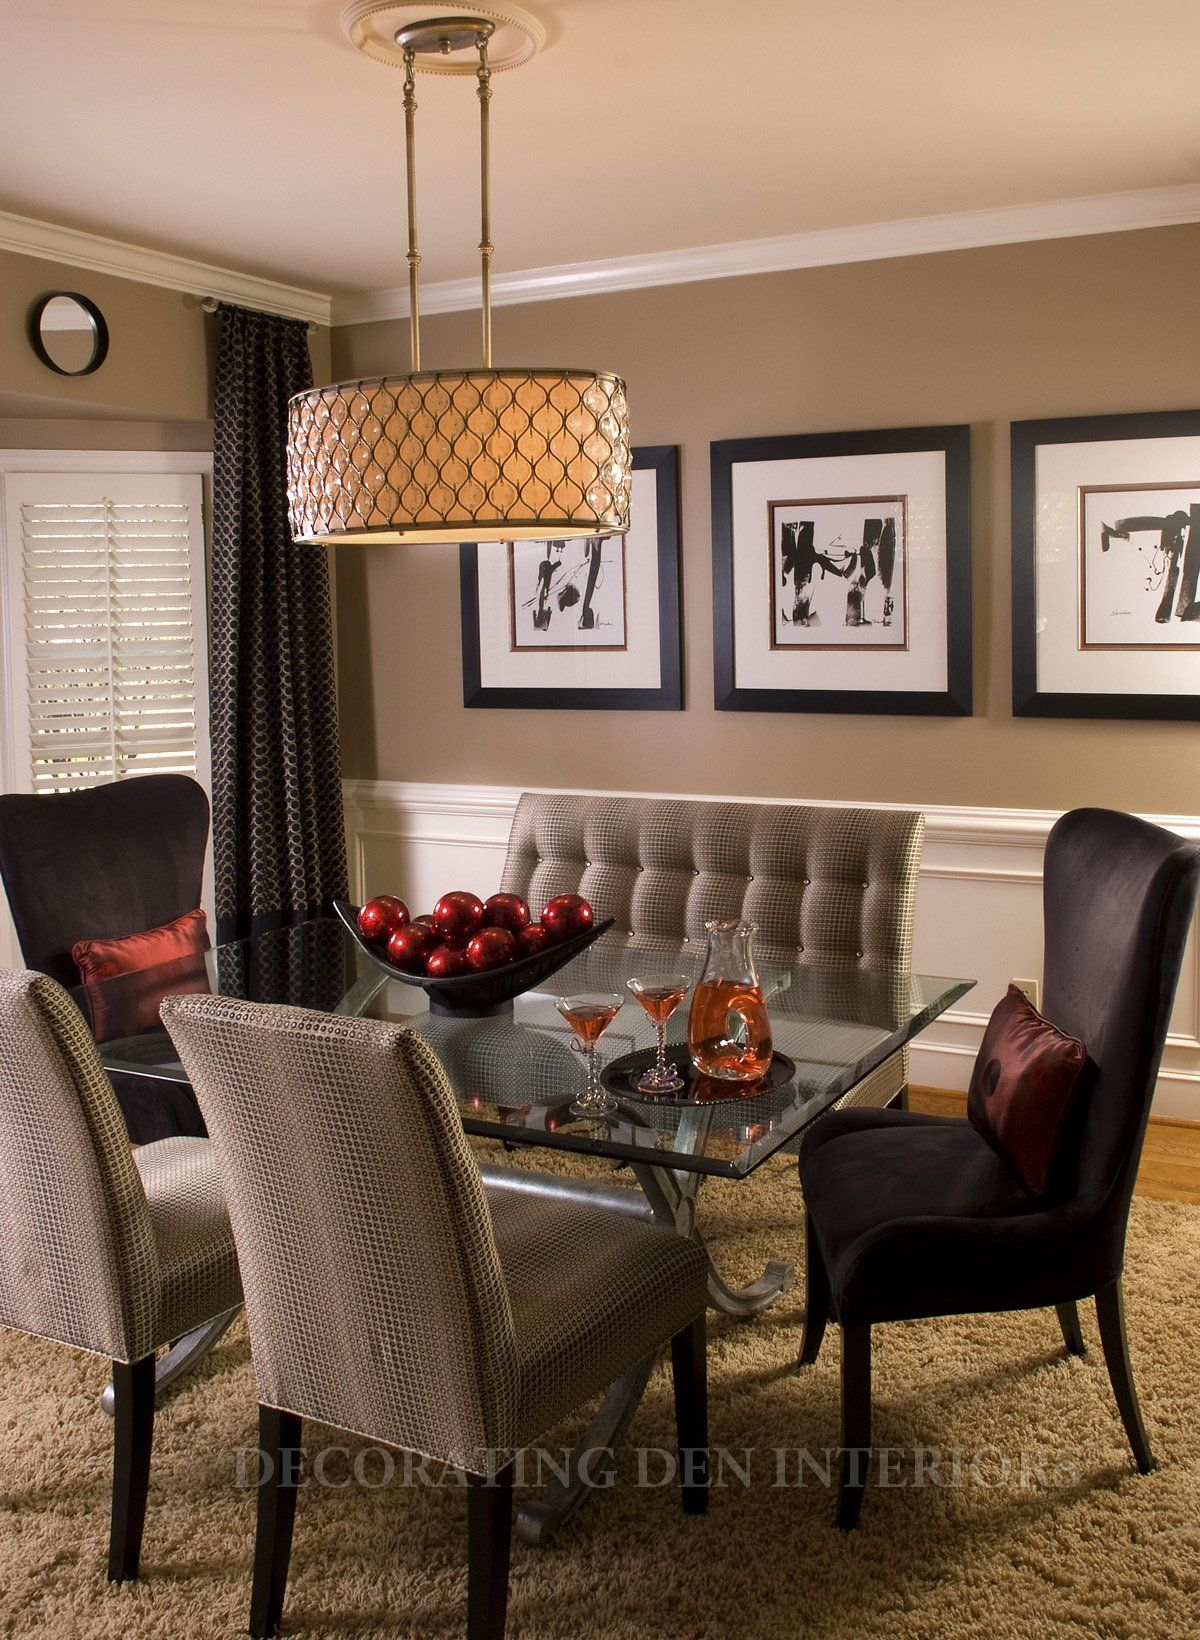 Color Ideas For Dining Room Walls New Dining Room With Dark Soft Neutral Color Scheme Fresh Paint Ideas Inspiration